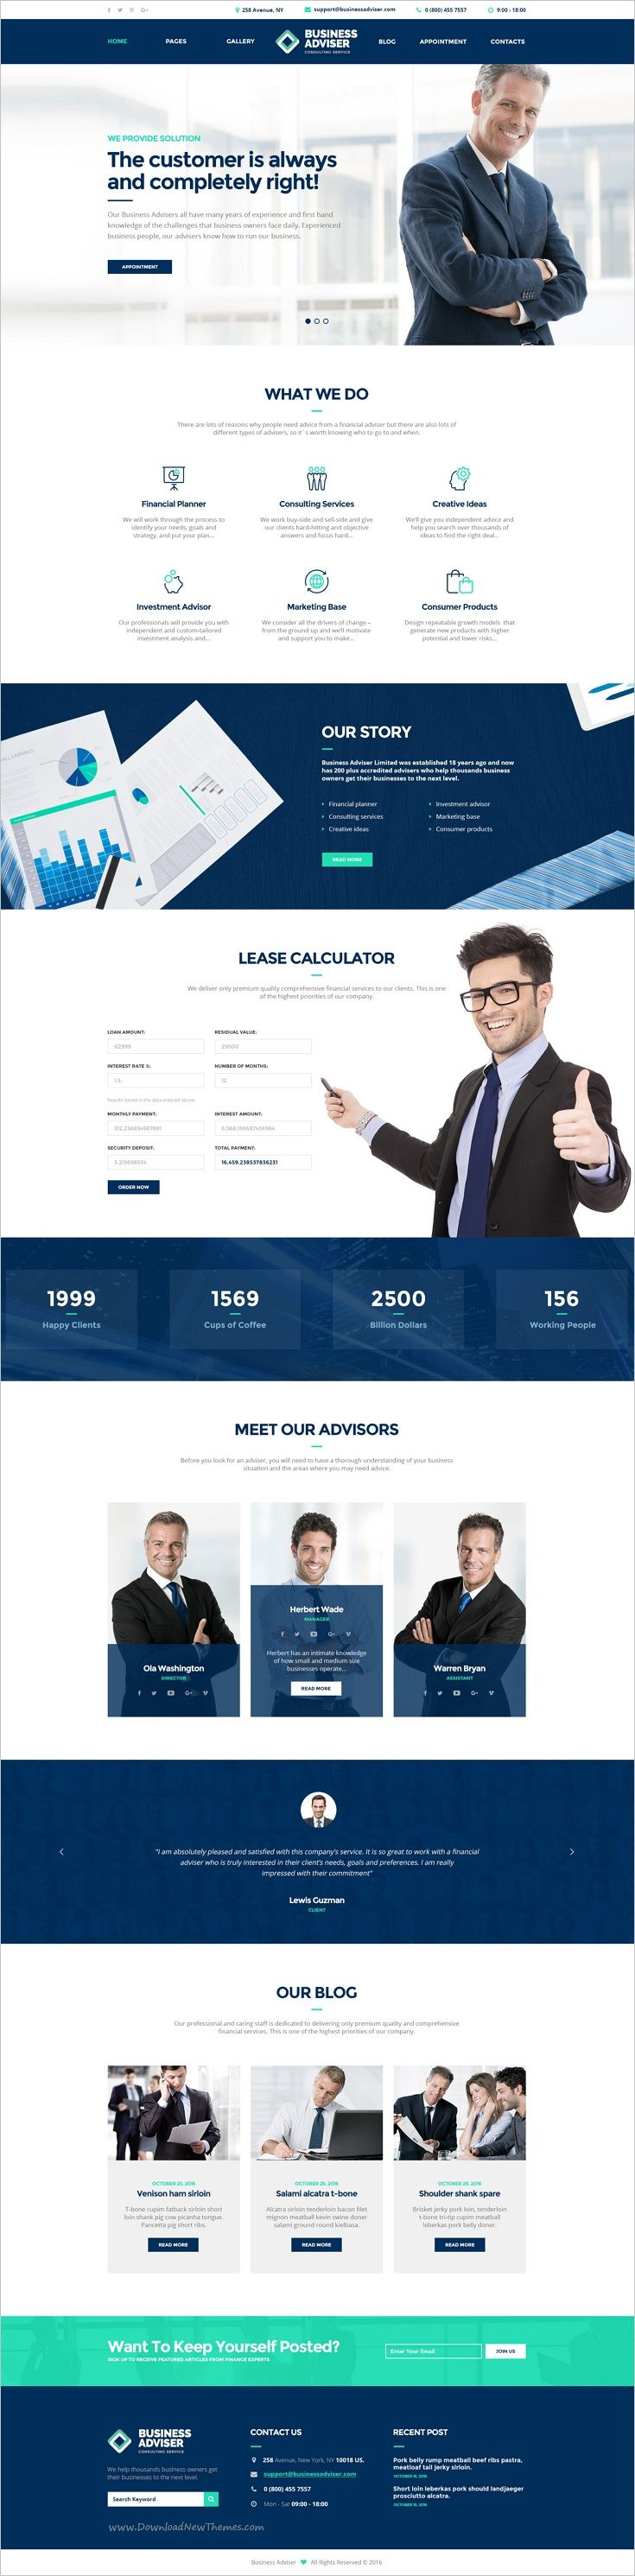 Pin By Isumon10 On Best Psd Themes Collection Web Layout Design Web Design Web Design Inspiration